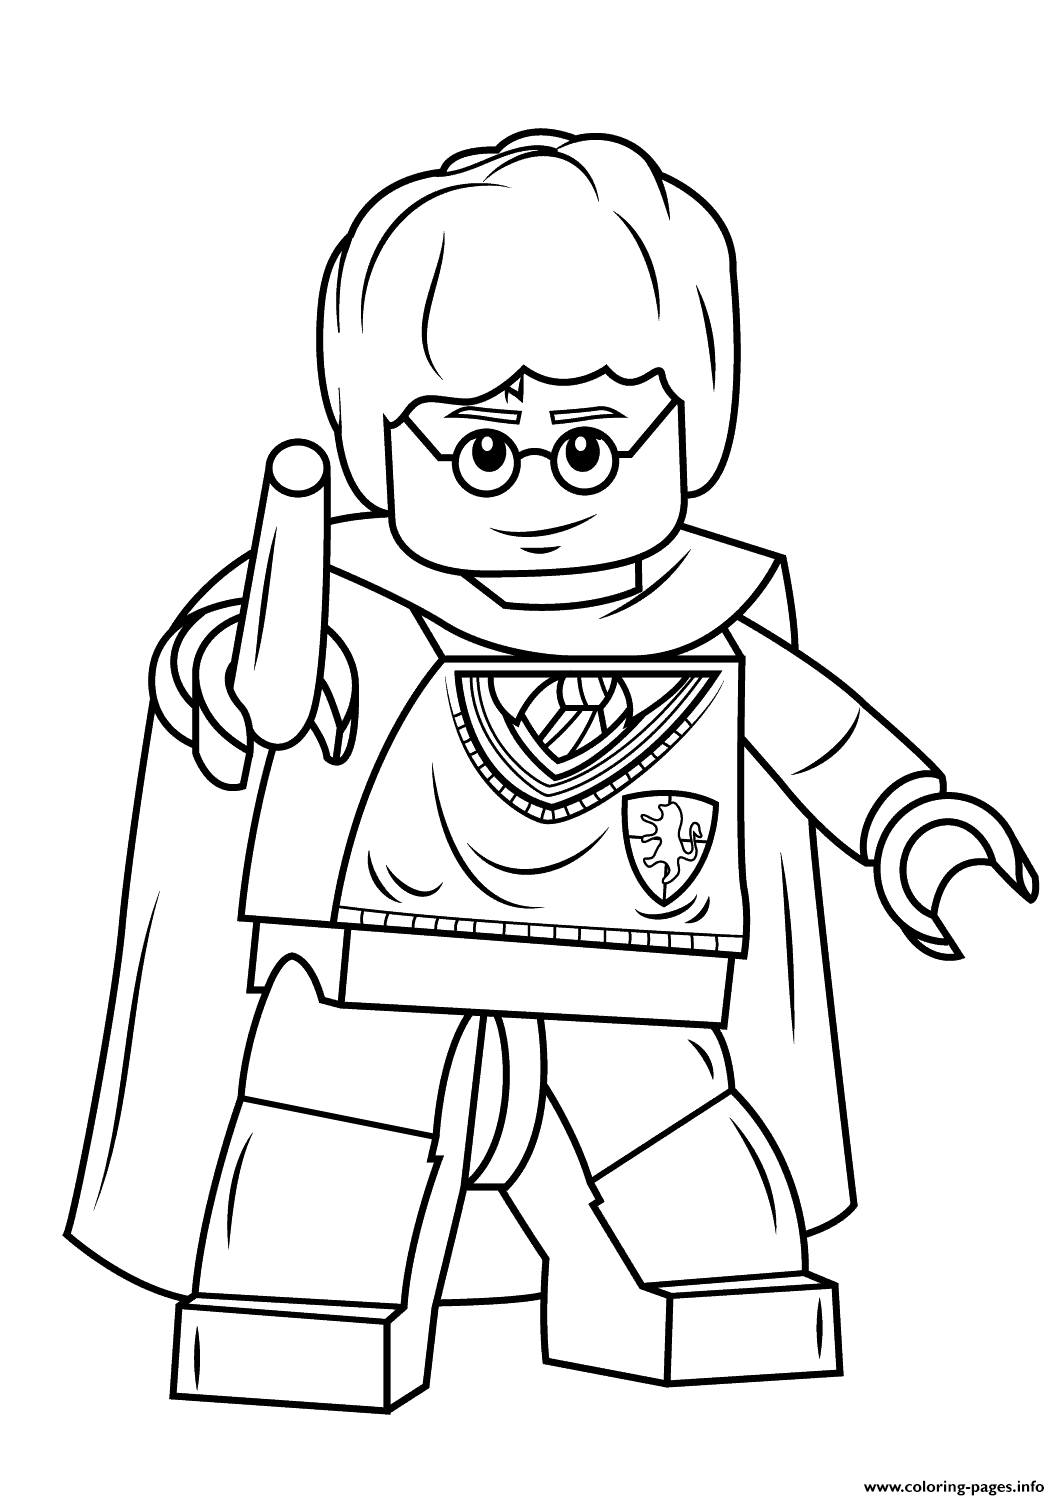 Print Lego Harry Potter With Wand Coloring Pages 21 Coloriage